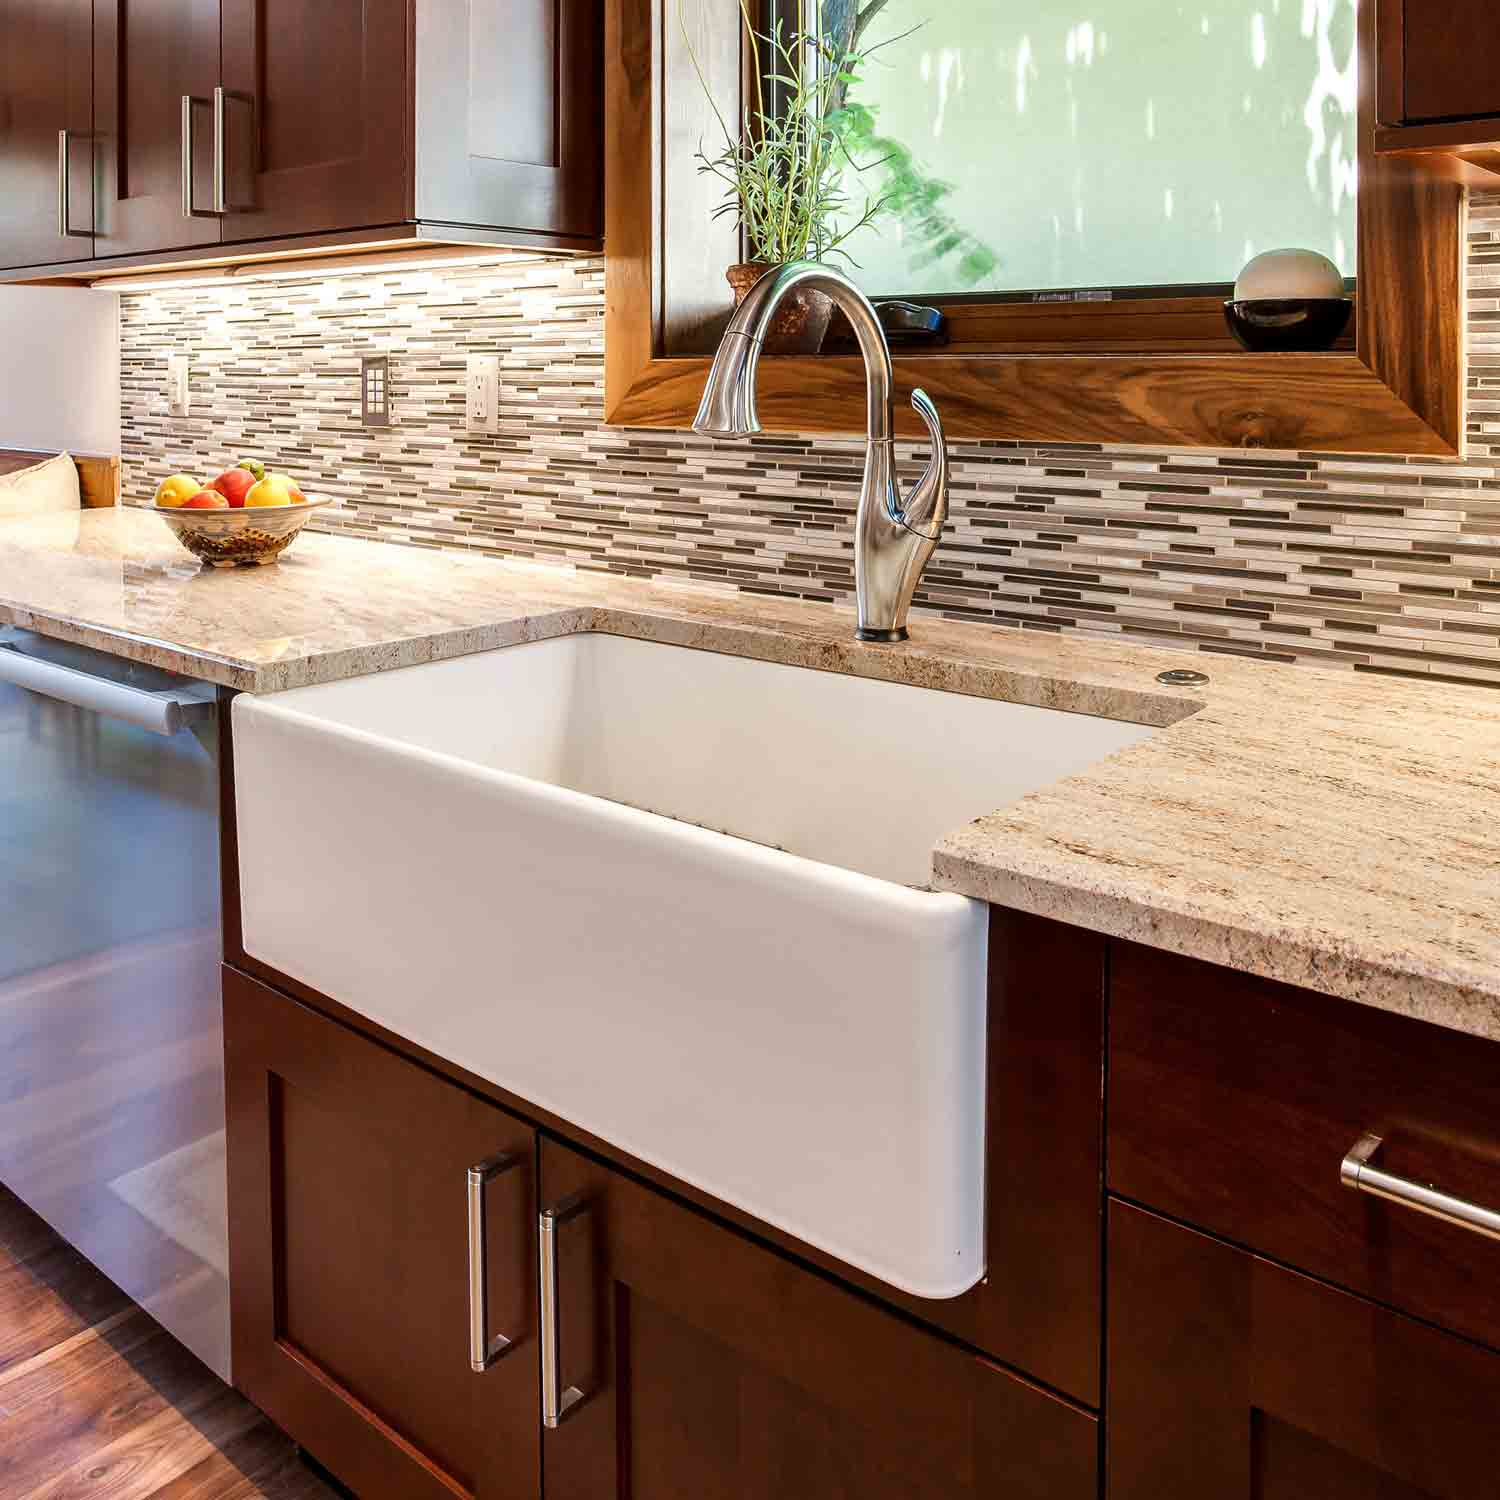 White farm kitchen sink with tile backsplash